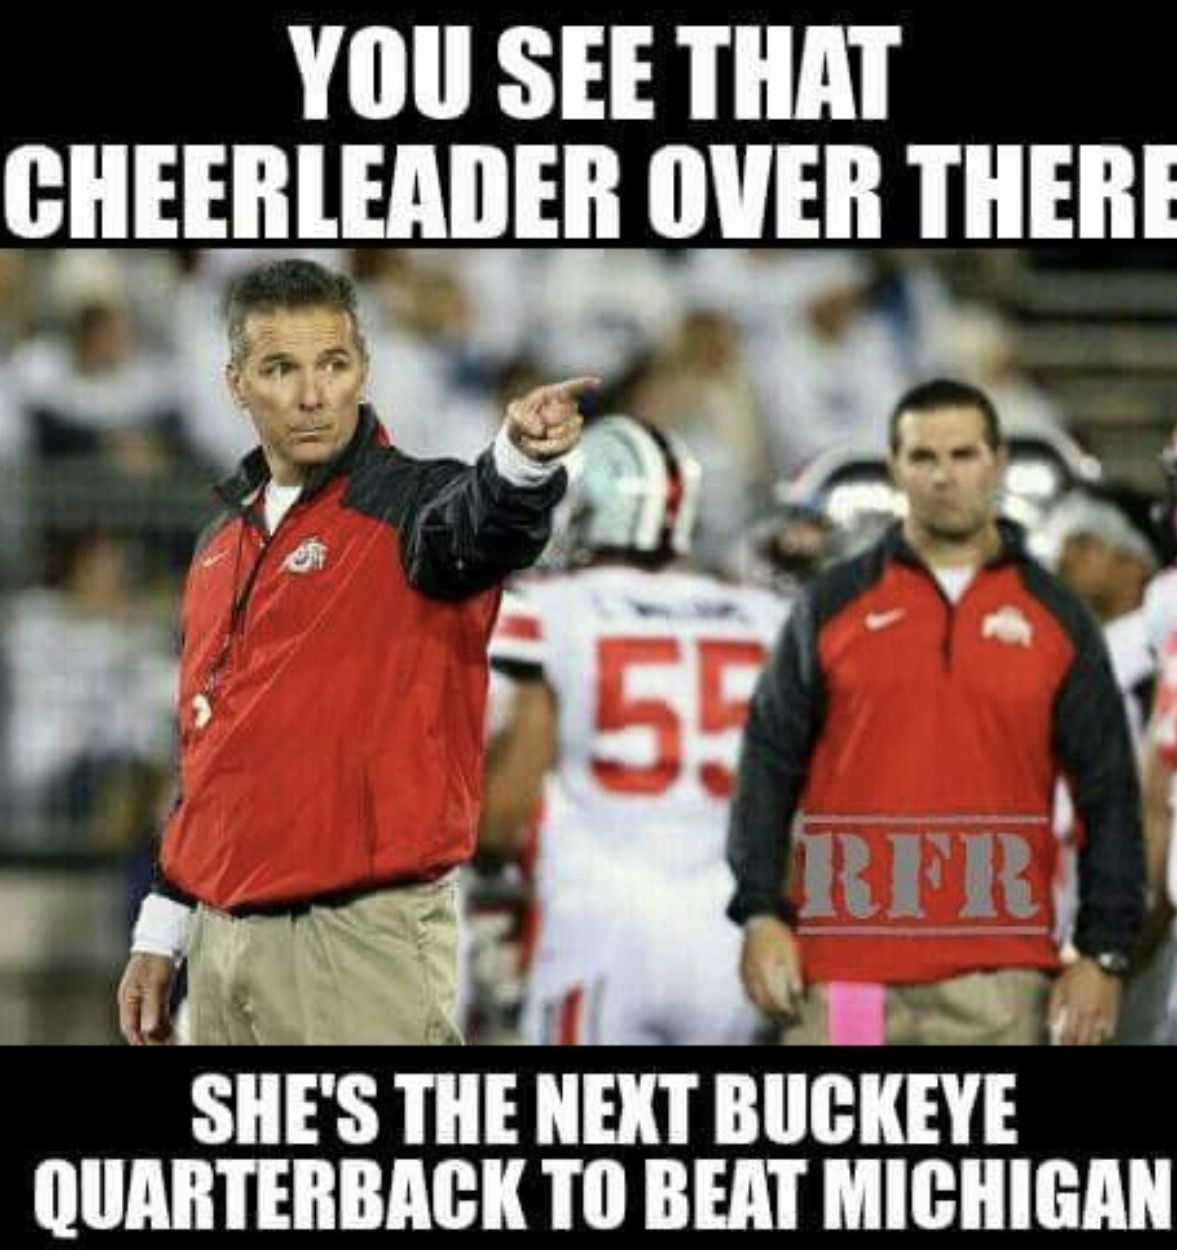 Pin By Alan Yousey On Buckeyes Ohio State Michigan Ohio State Vs Michigan Ohio State Football